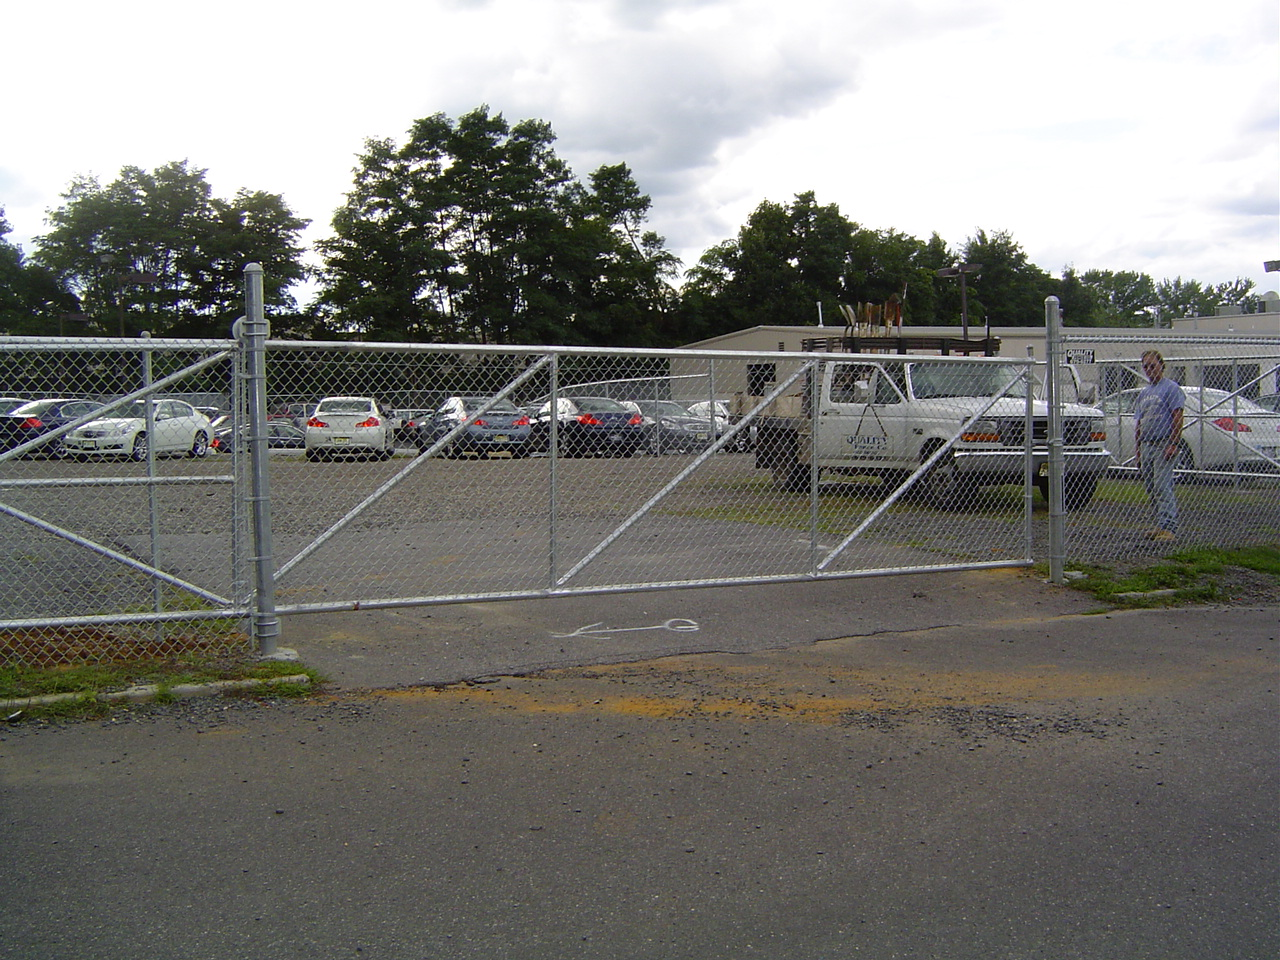 Commercial quality fence company qualityfence